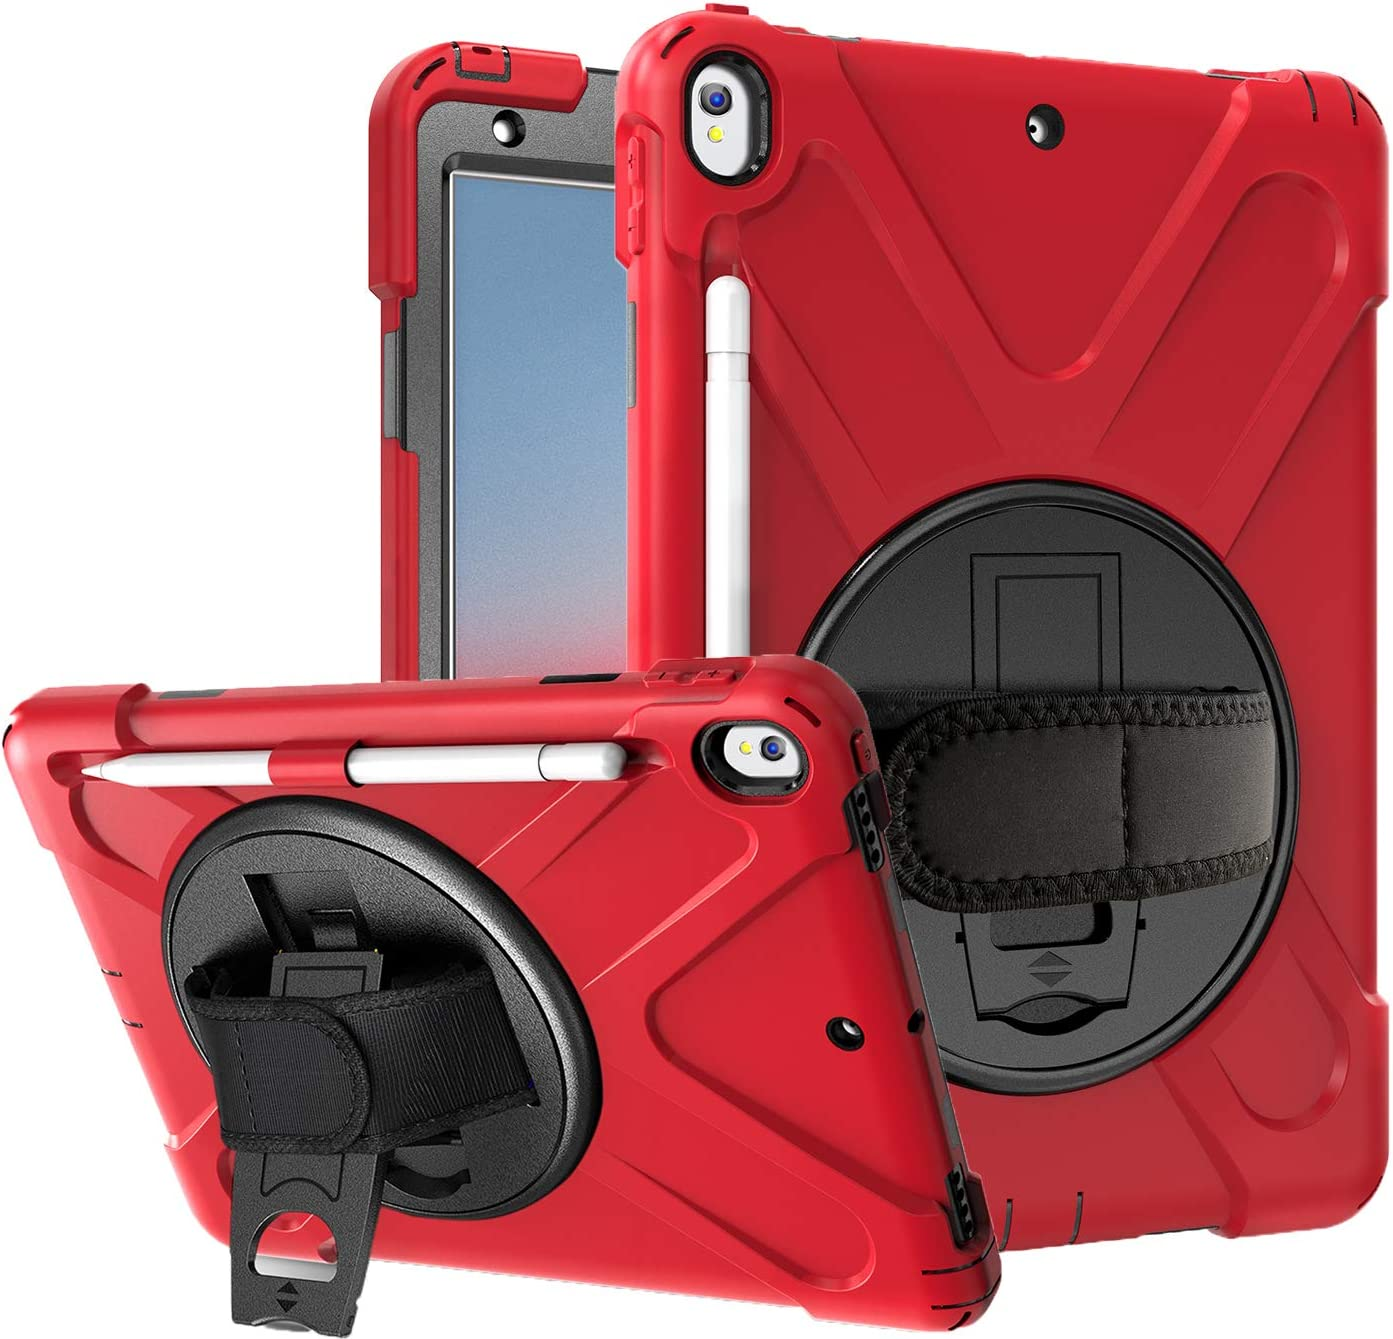 """Azzsy iPad Air 3 Case 10.5"""" 2019/iPad Pro 10.5 Case 2017,[360 Degree Swivel Stand/Hand Strap] Heavy Duty Shockproof Rugged Full Body Protective Case for iPad Air (3rd Generation) 10.5"""" 2019 (red)"""